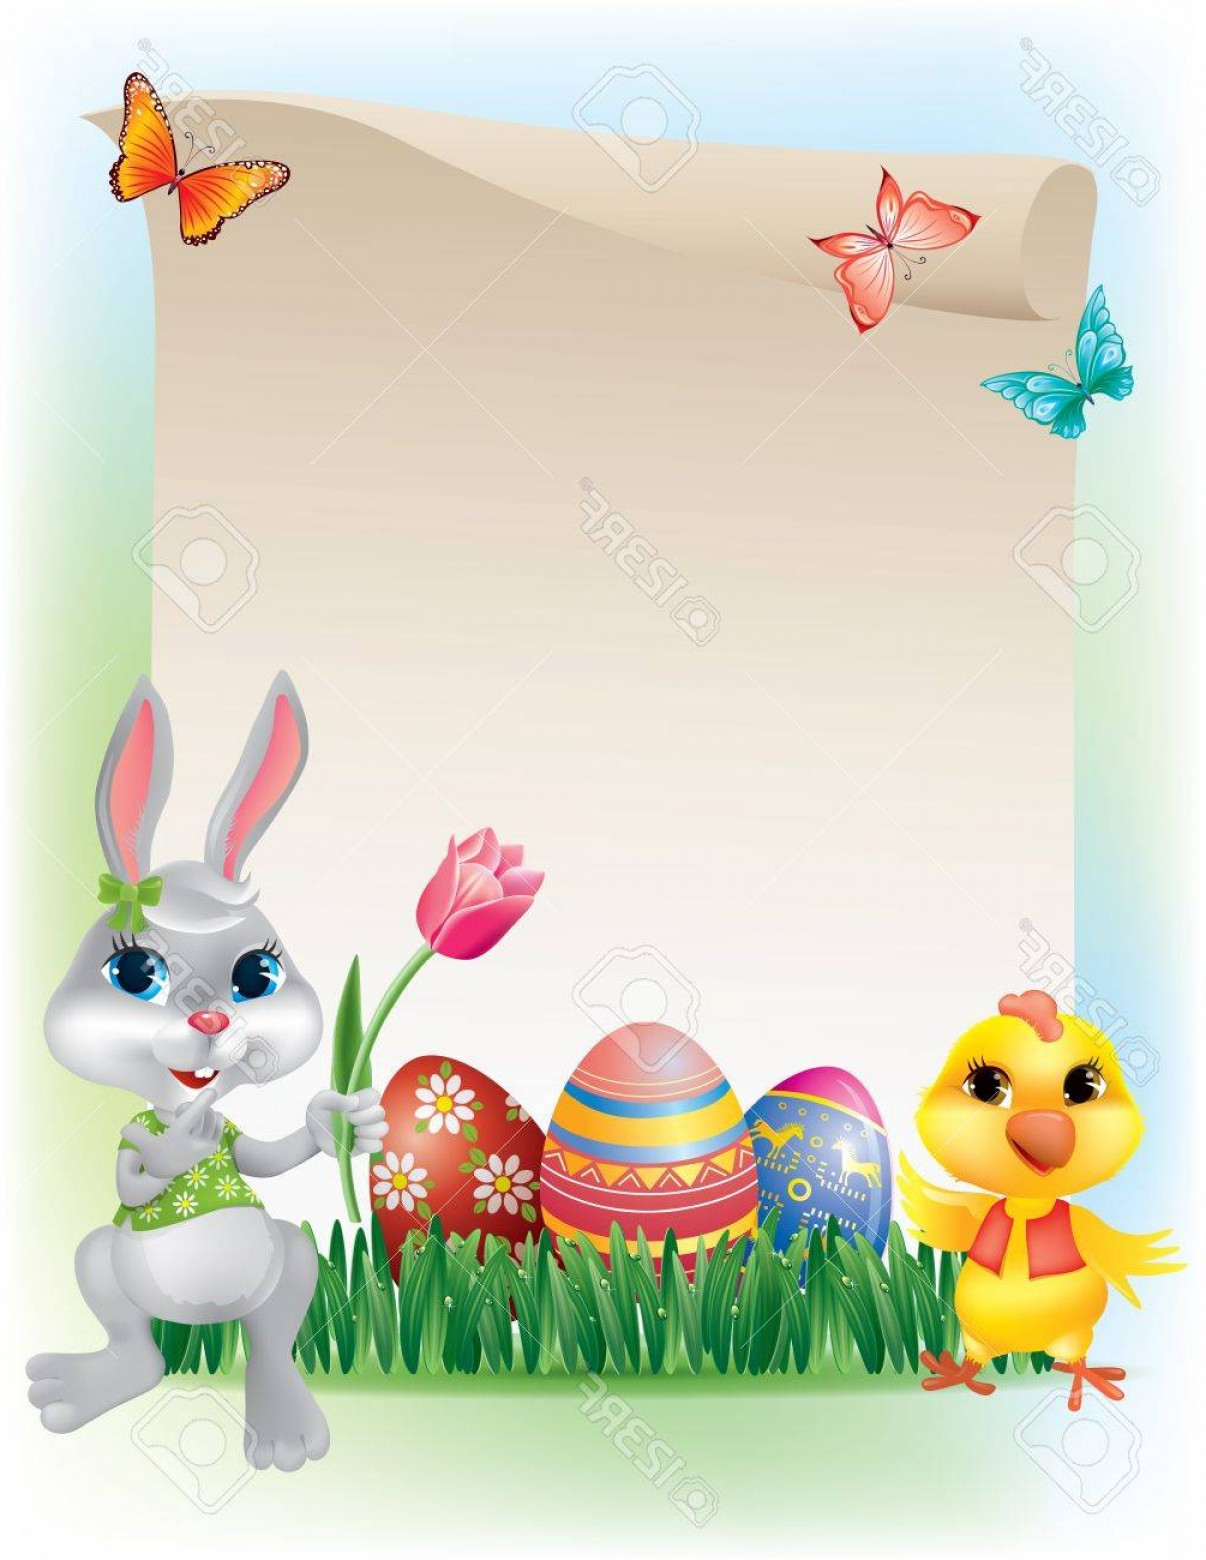 Easter Vector Art No Background: Photoeaster Background With Bunny And Chicken Contains Transparent Objects